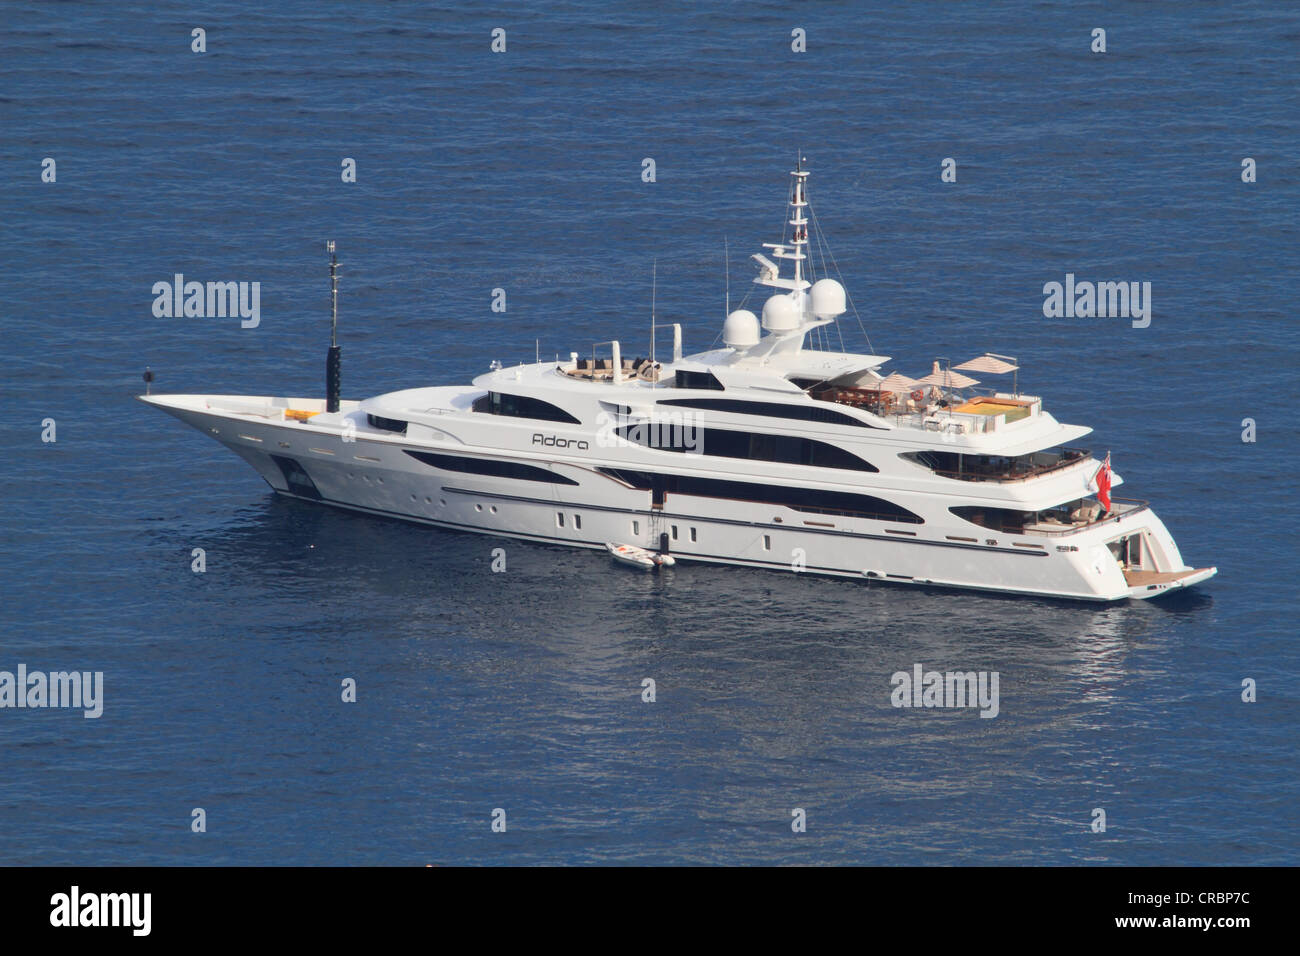 Motor yacht, Adora, built by Benetti, overall length, 61.5 metres, built in 2010, on the Cote d'Azur, France, - Stock Image